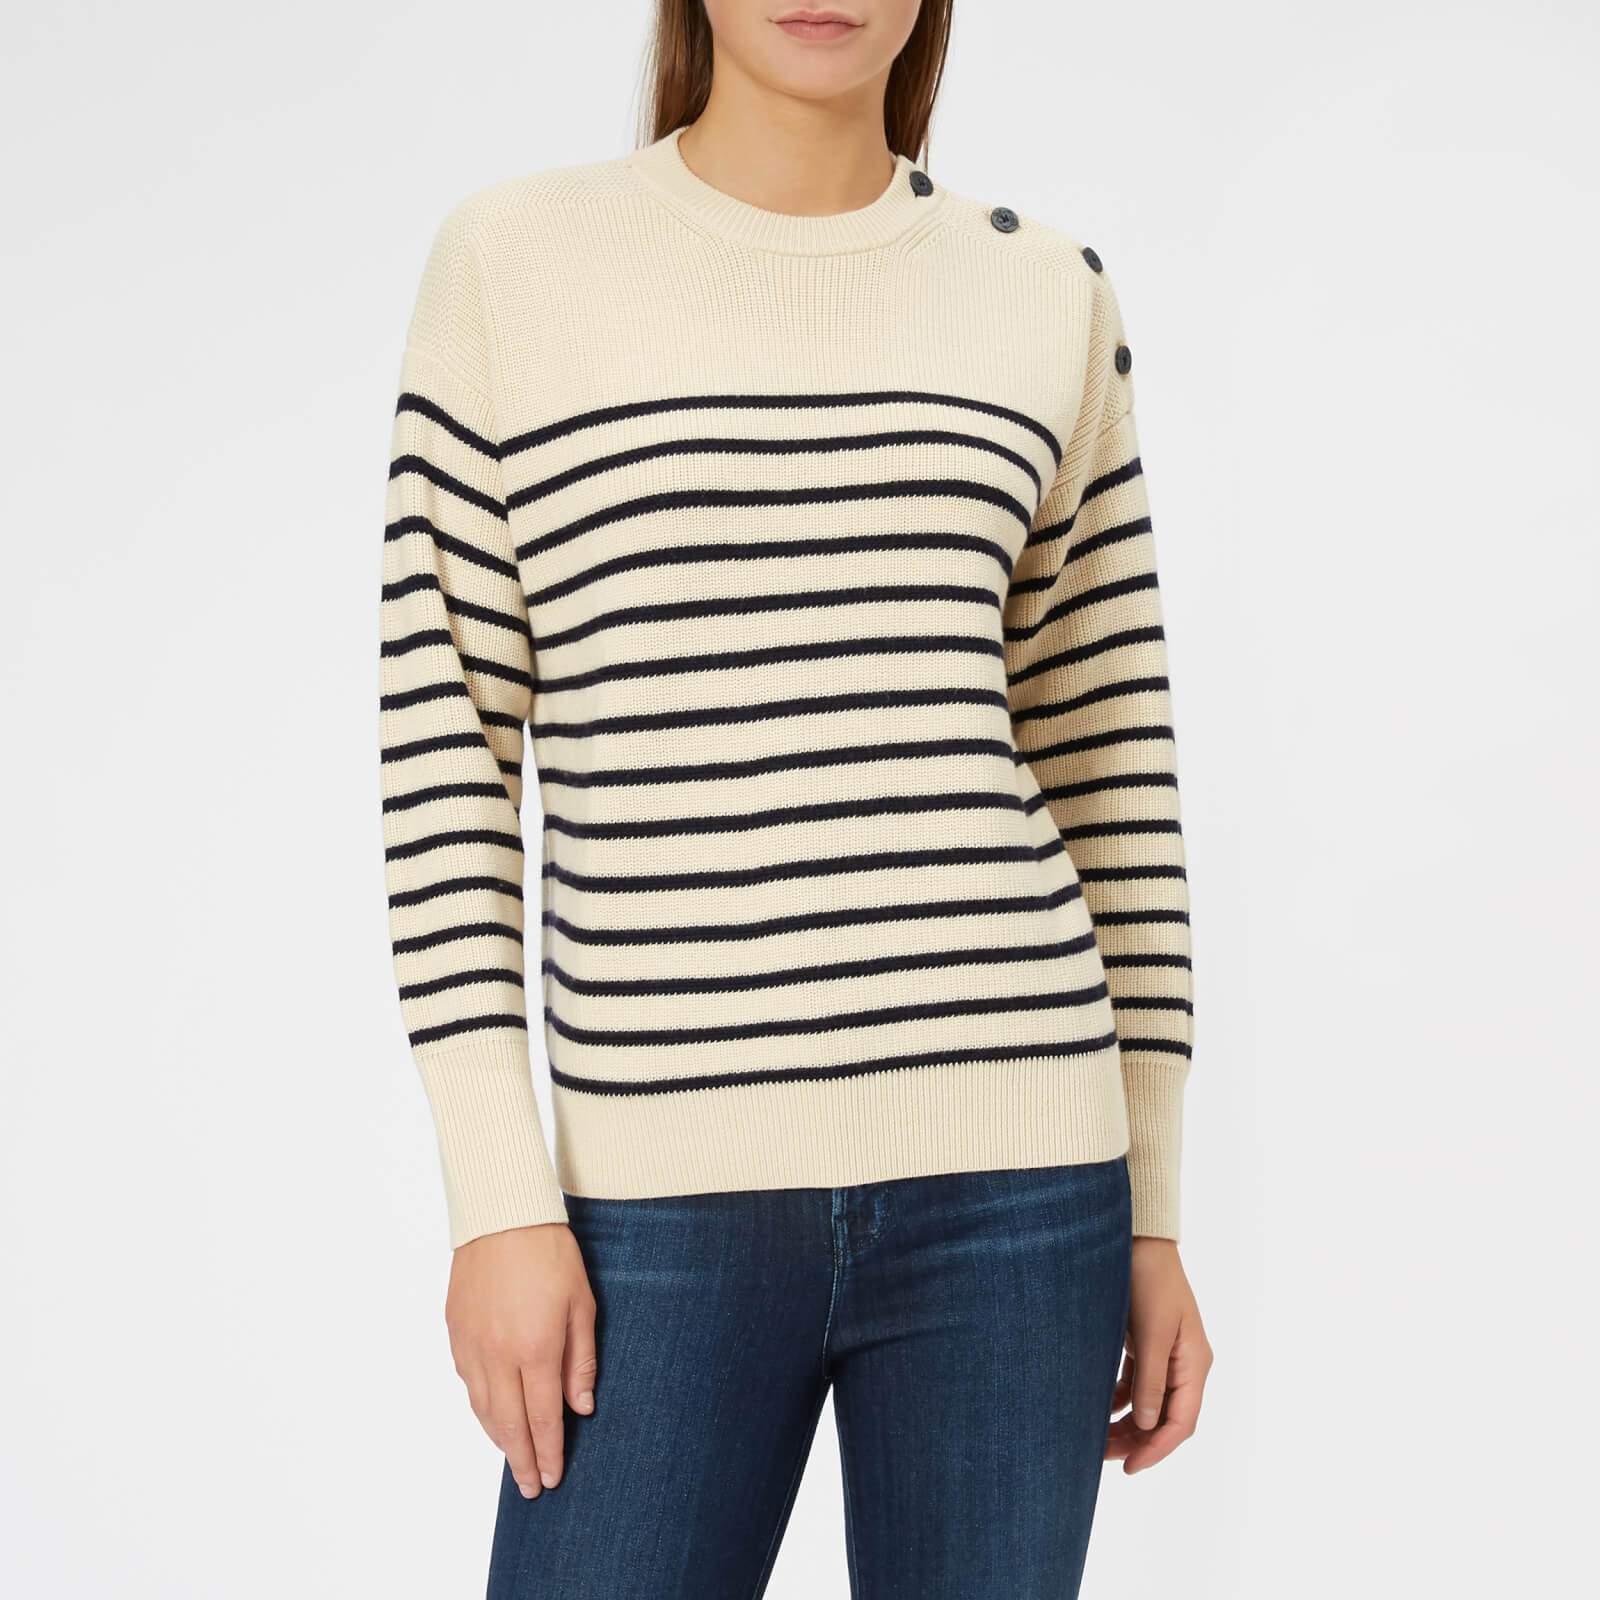 755d18564 Polo Ralph Lauren Women s Stripe Knit Jumper - Cream Navy - Free UK  Delivery over £50